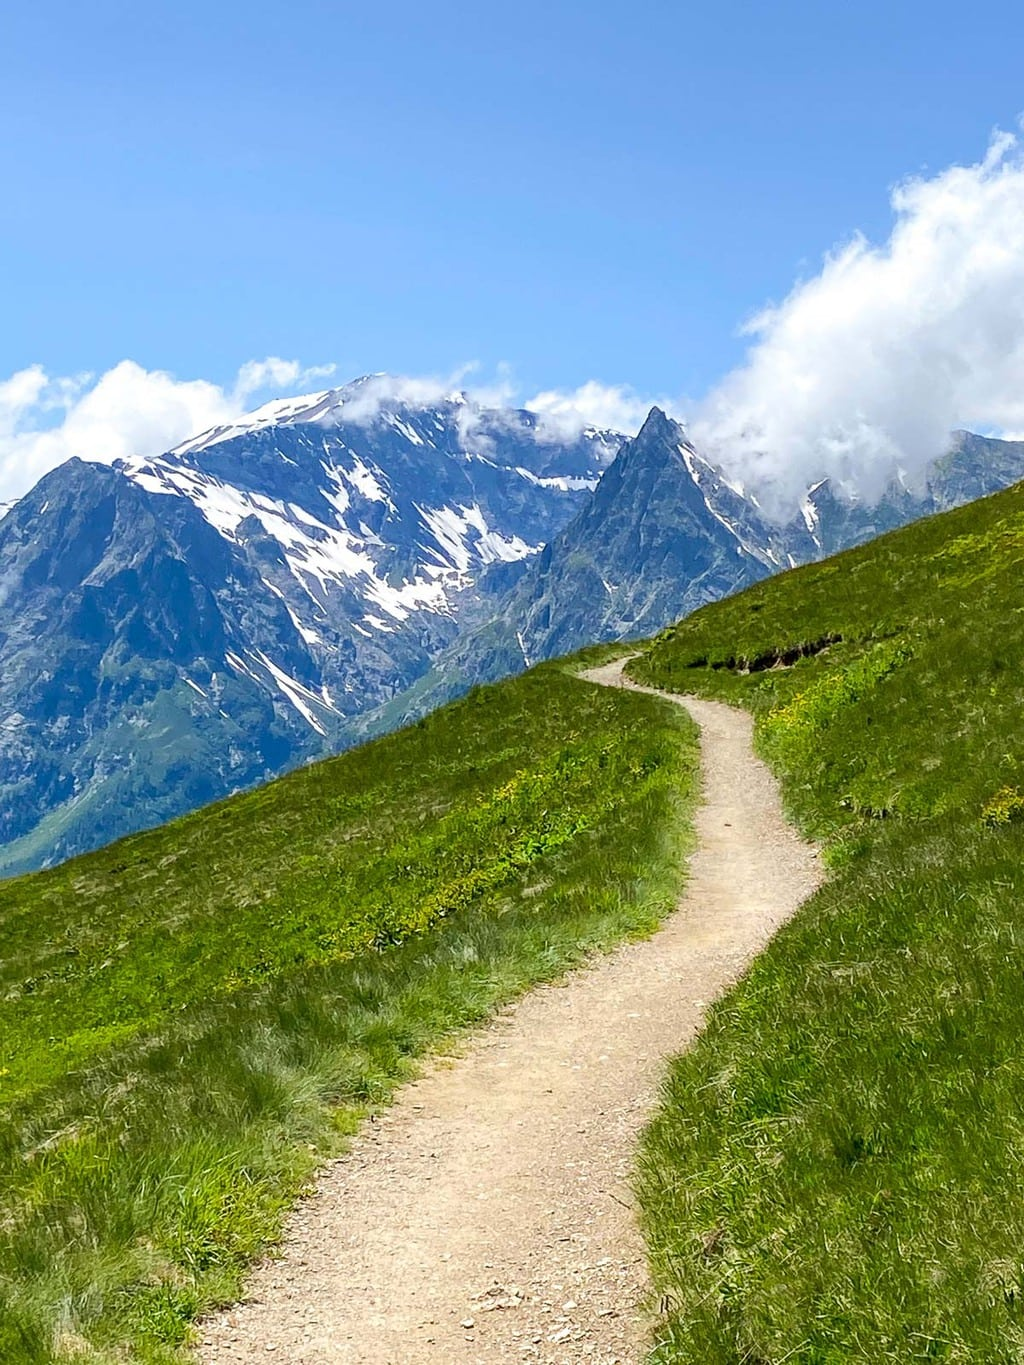 Vertical photo of Alpine hiking trails near Le Tour, France with the mountains surrounding Mount Blanc in the background.